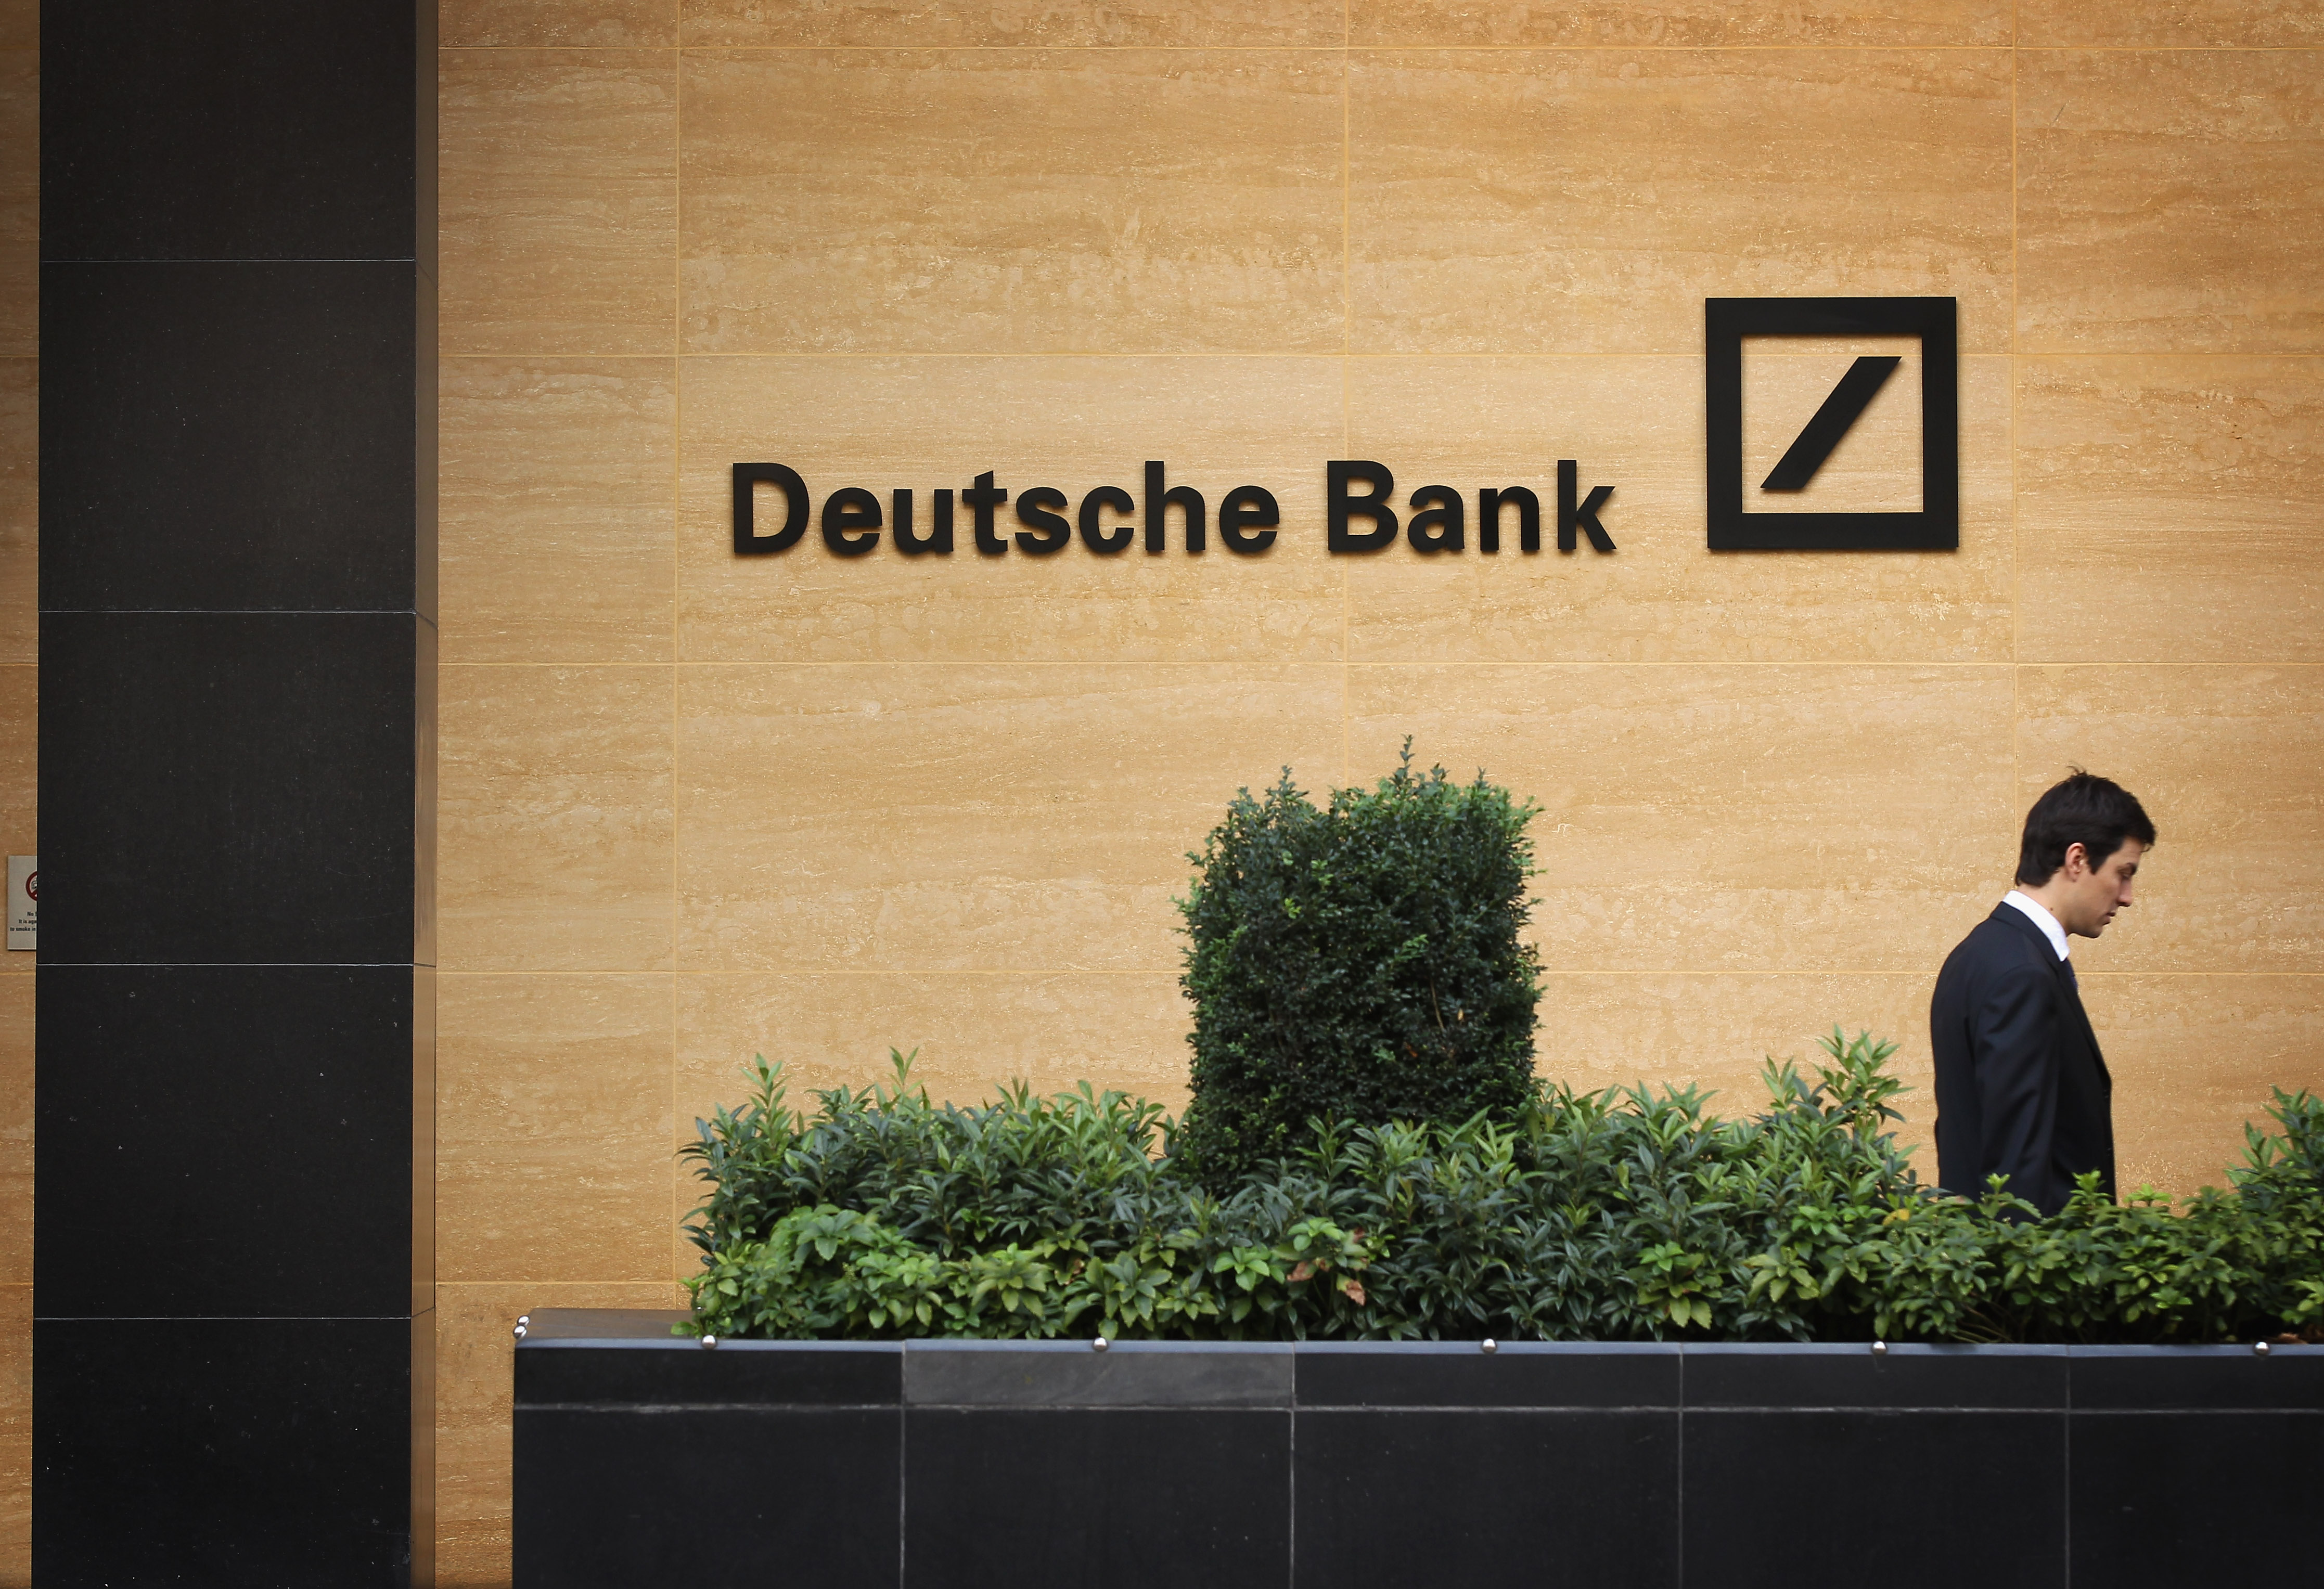 A general view of Deutsche Bank on Sept. 5, 2011 in London.